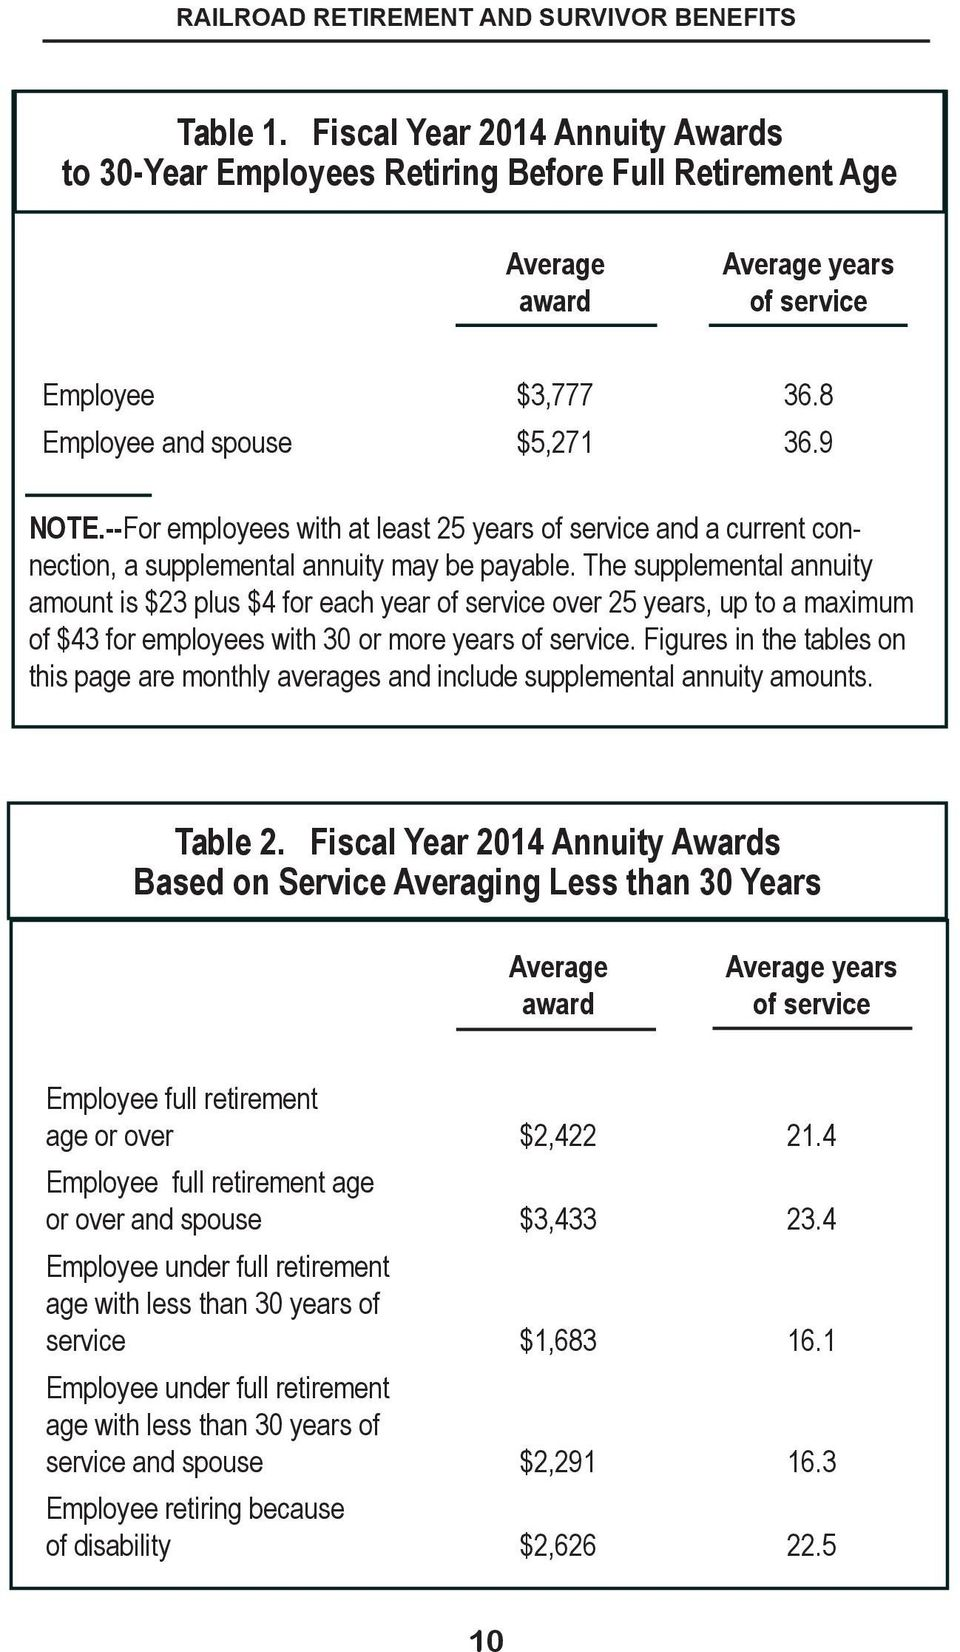 The supplemental annuity amount is $23 plus $4 for each year of service over 25 years, up to a maximum of $43 for employees with 30 or more years of service.